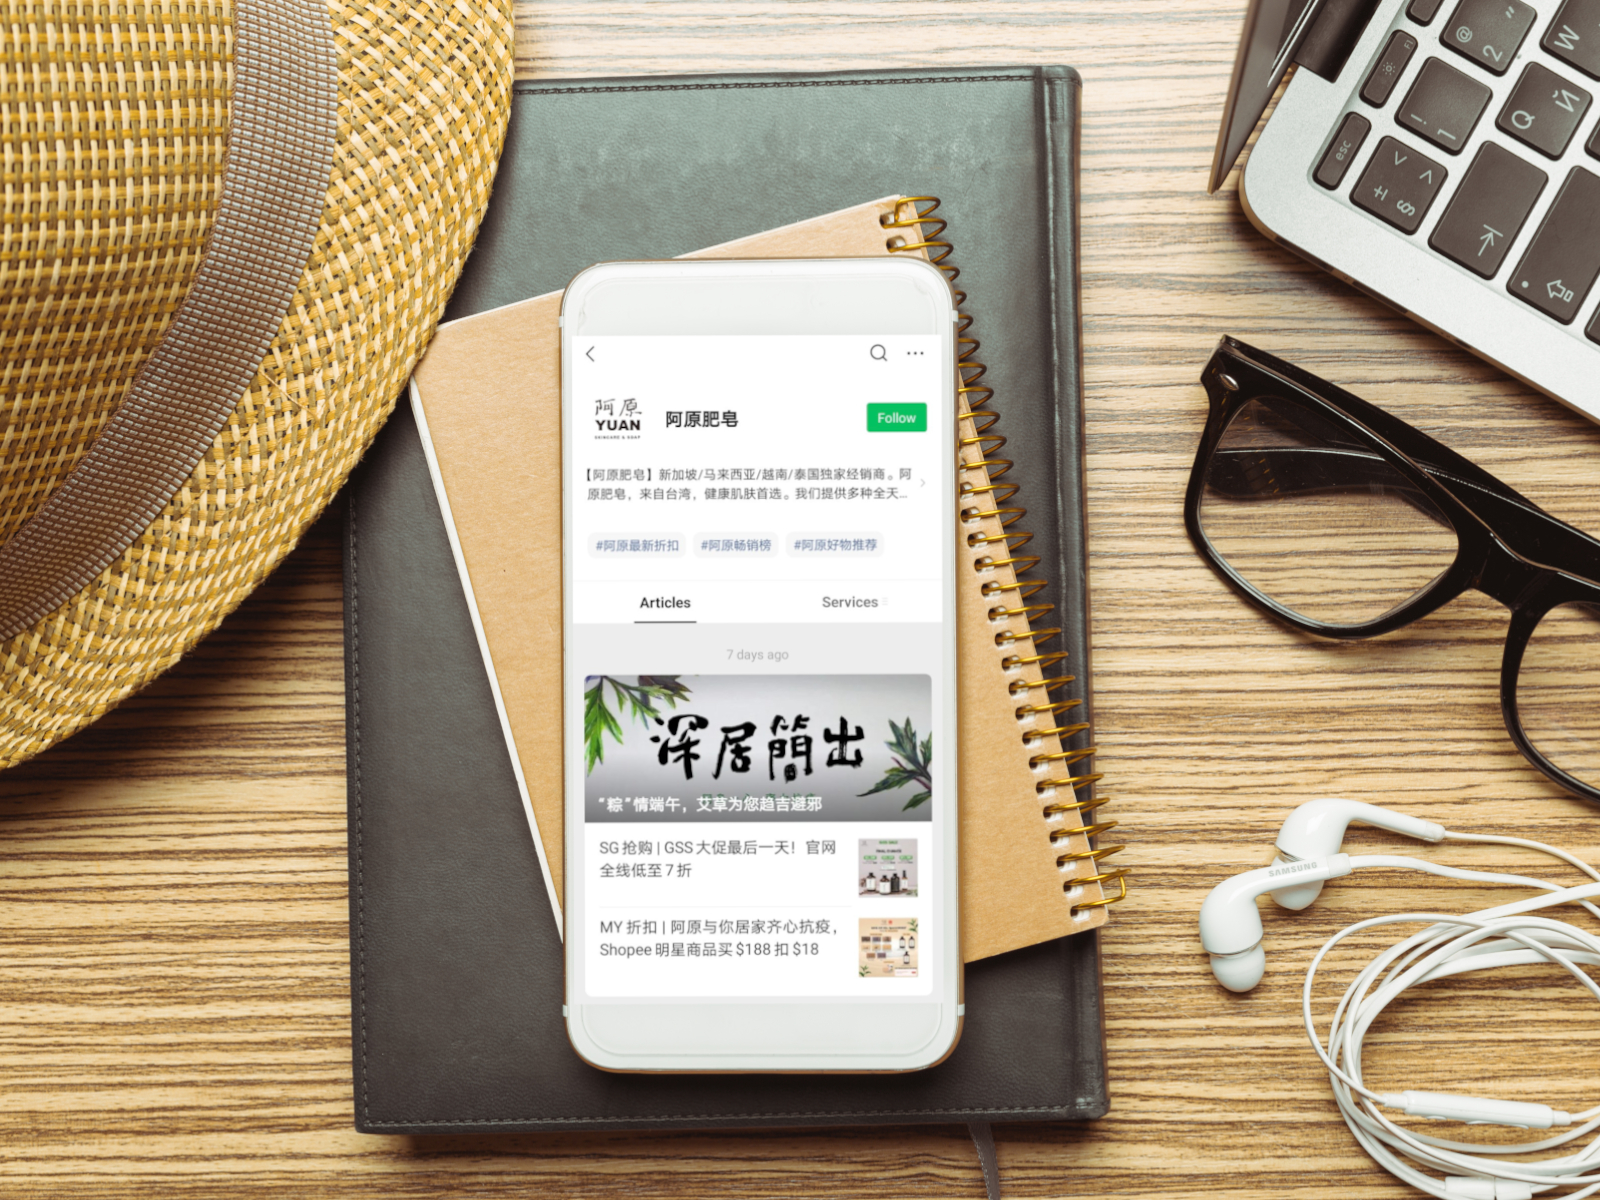 yuan-skincare-wechat-official-account-launched 1